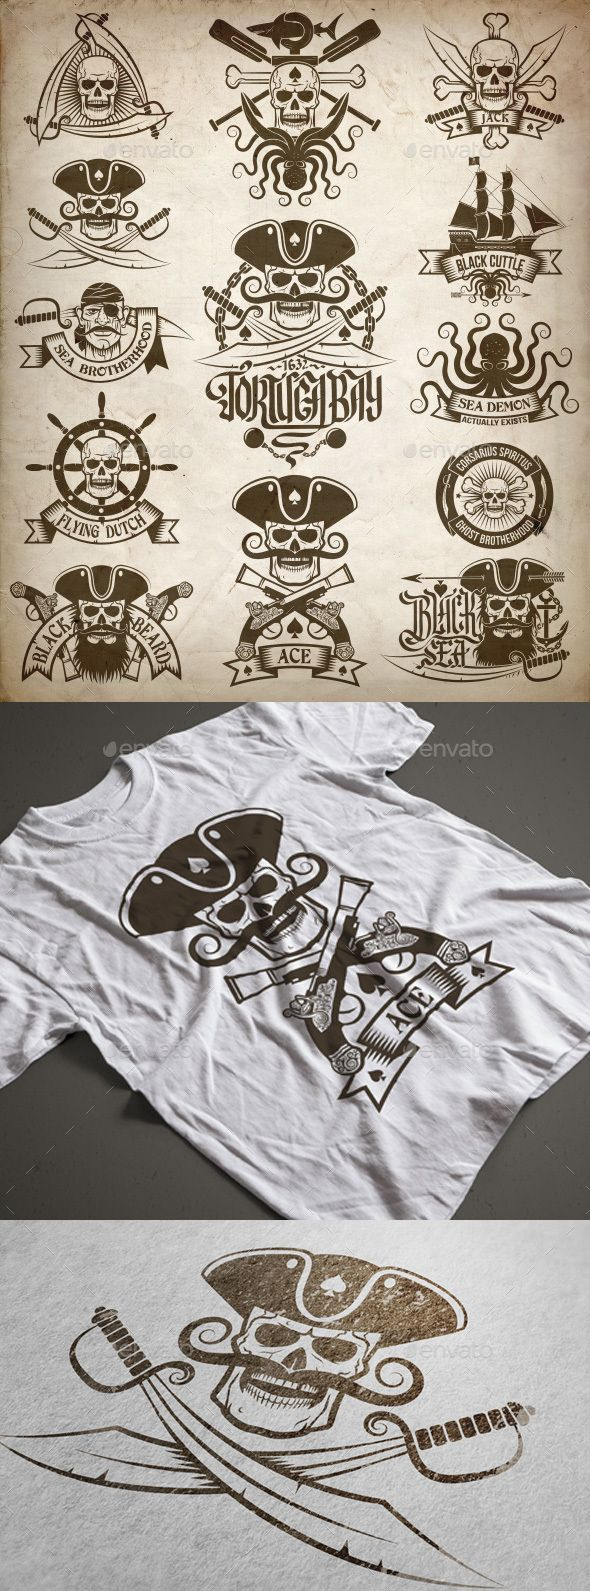 Pirate Skull Tattoos Set — Photoshop PSD #retro #Pirate tattoo • Available here → https://graphicriver.net/item/pirate-skull-tattoos-set/16183149?ref=pxcr